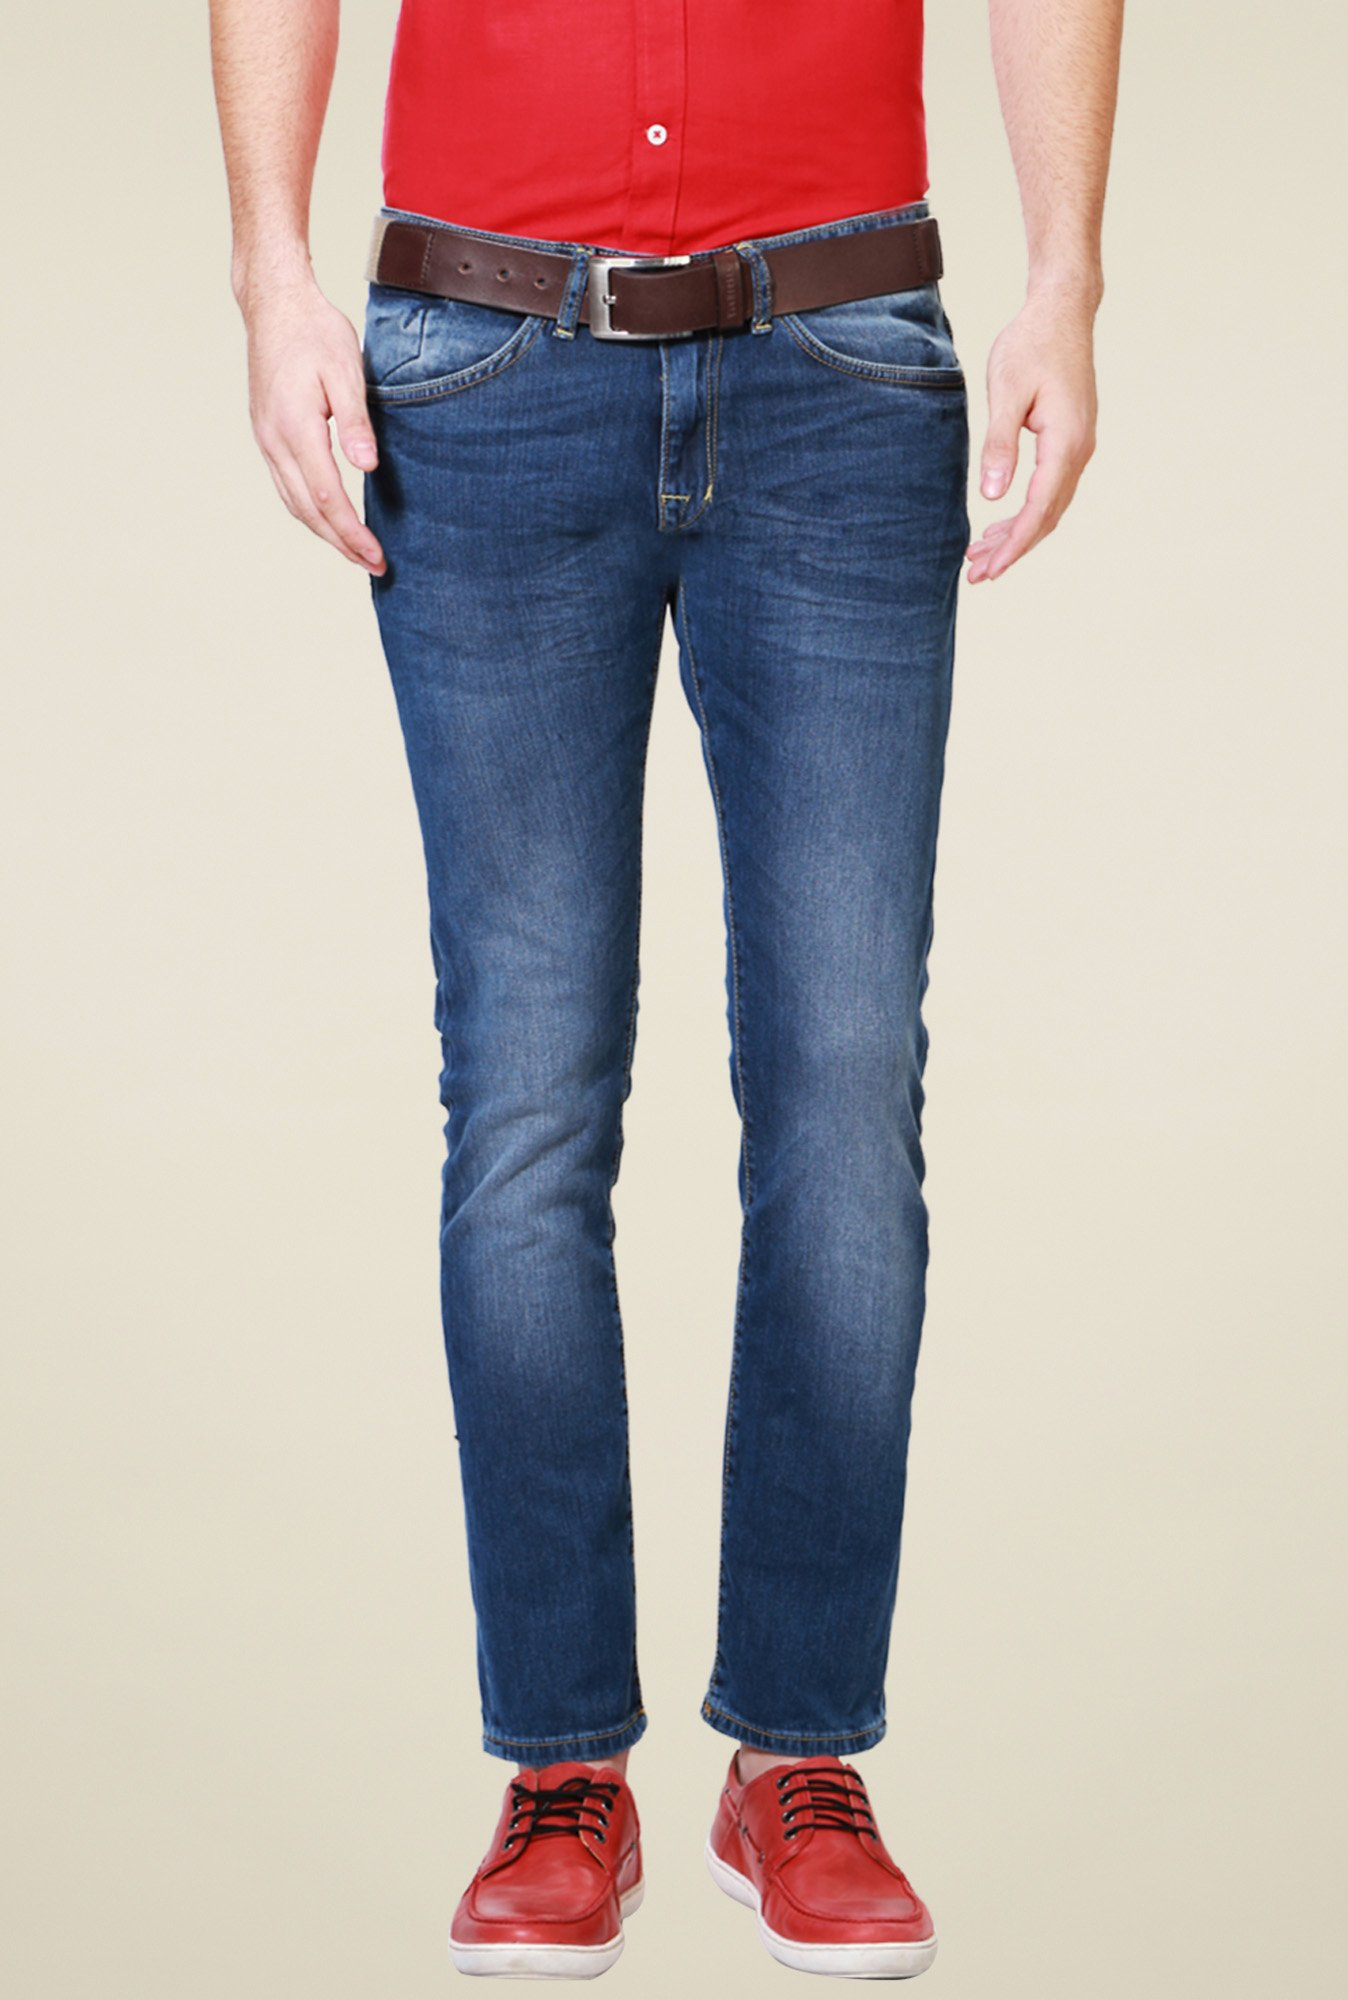 Allen Solly Blue Lightly Washed Cotton Jeans